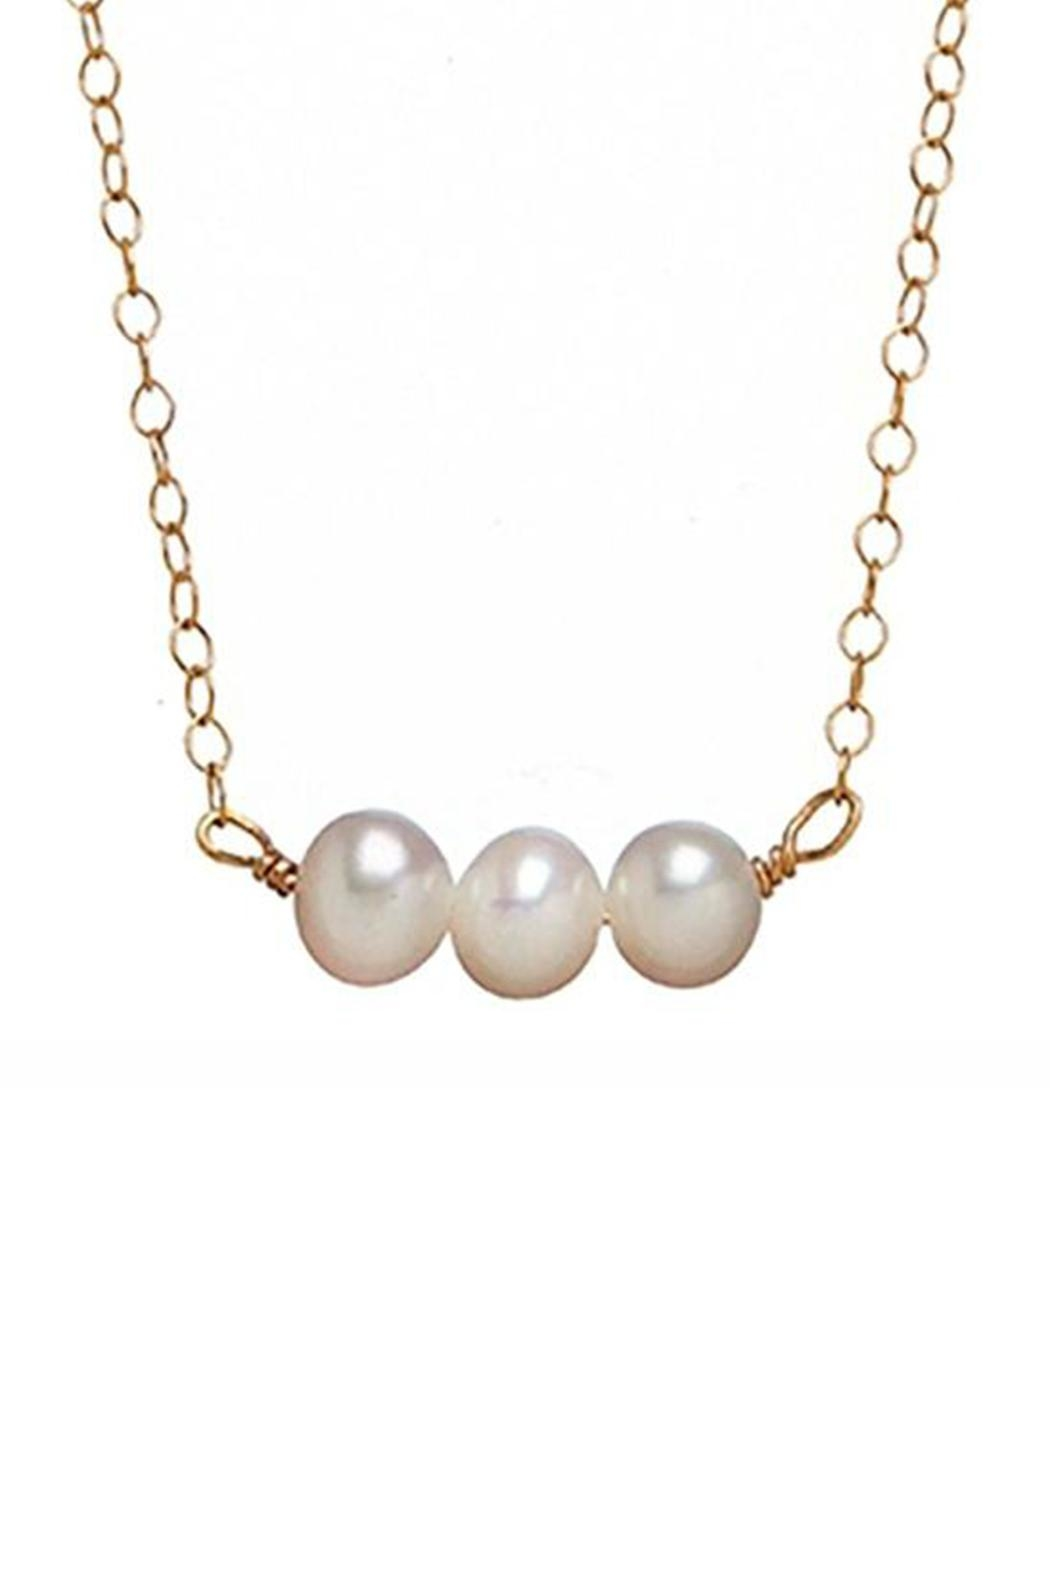 Bottleblond Jewels Three Pearl Necklace - Main Image